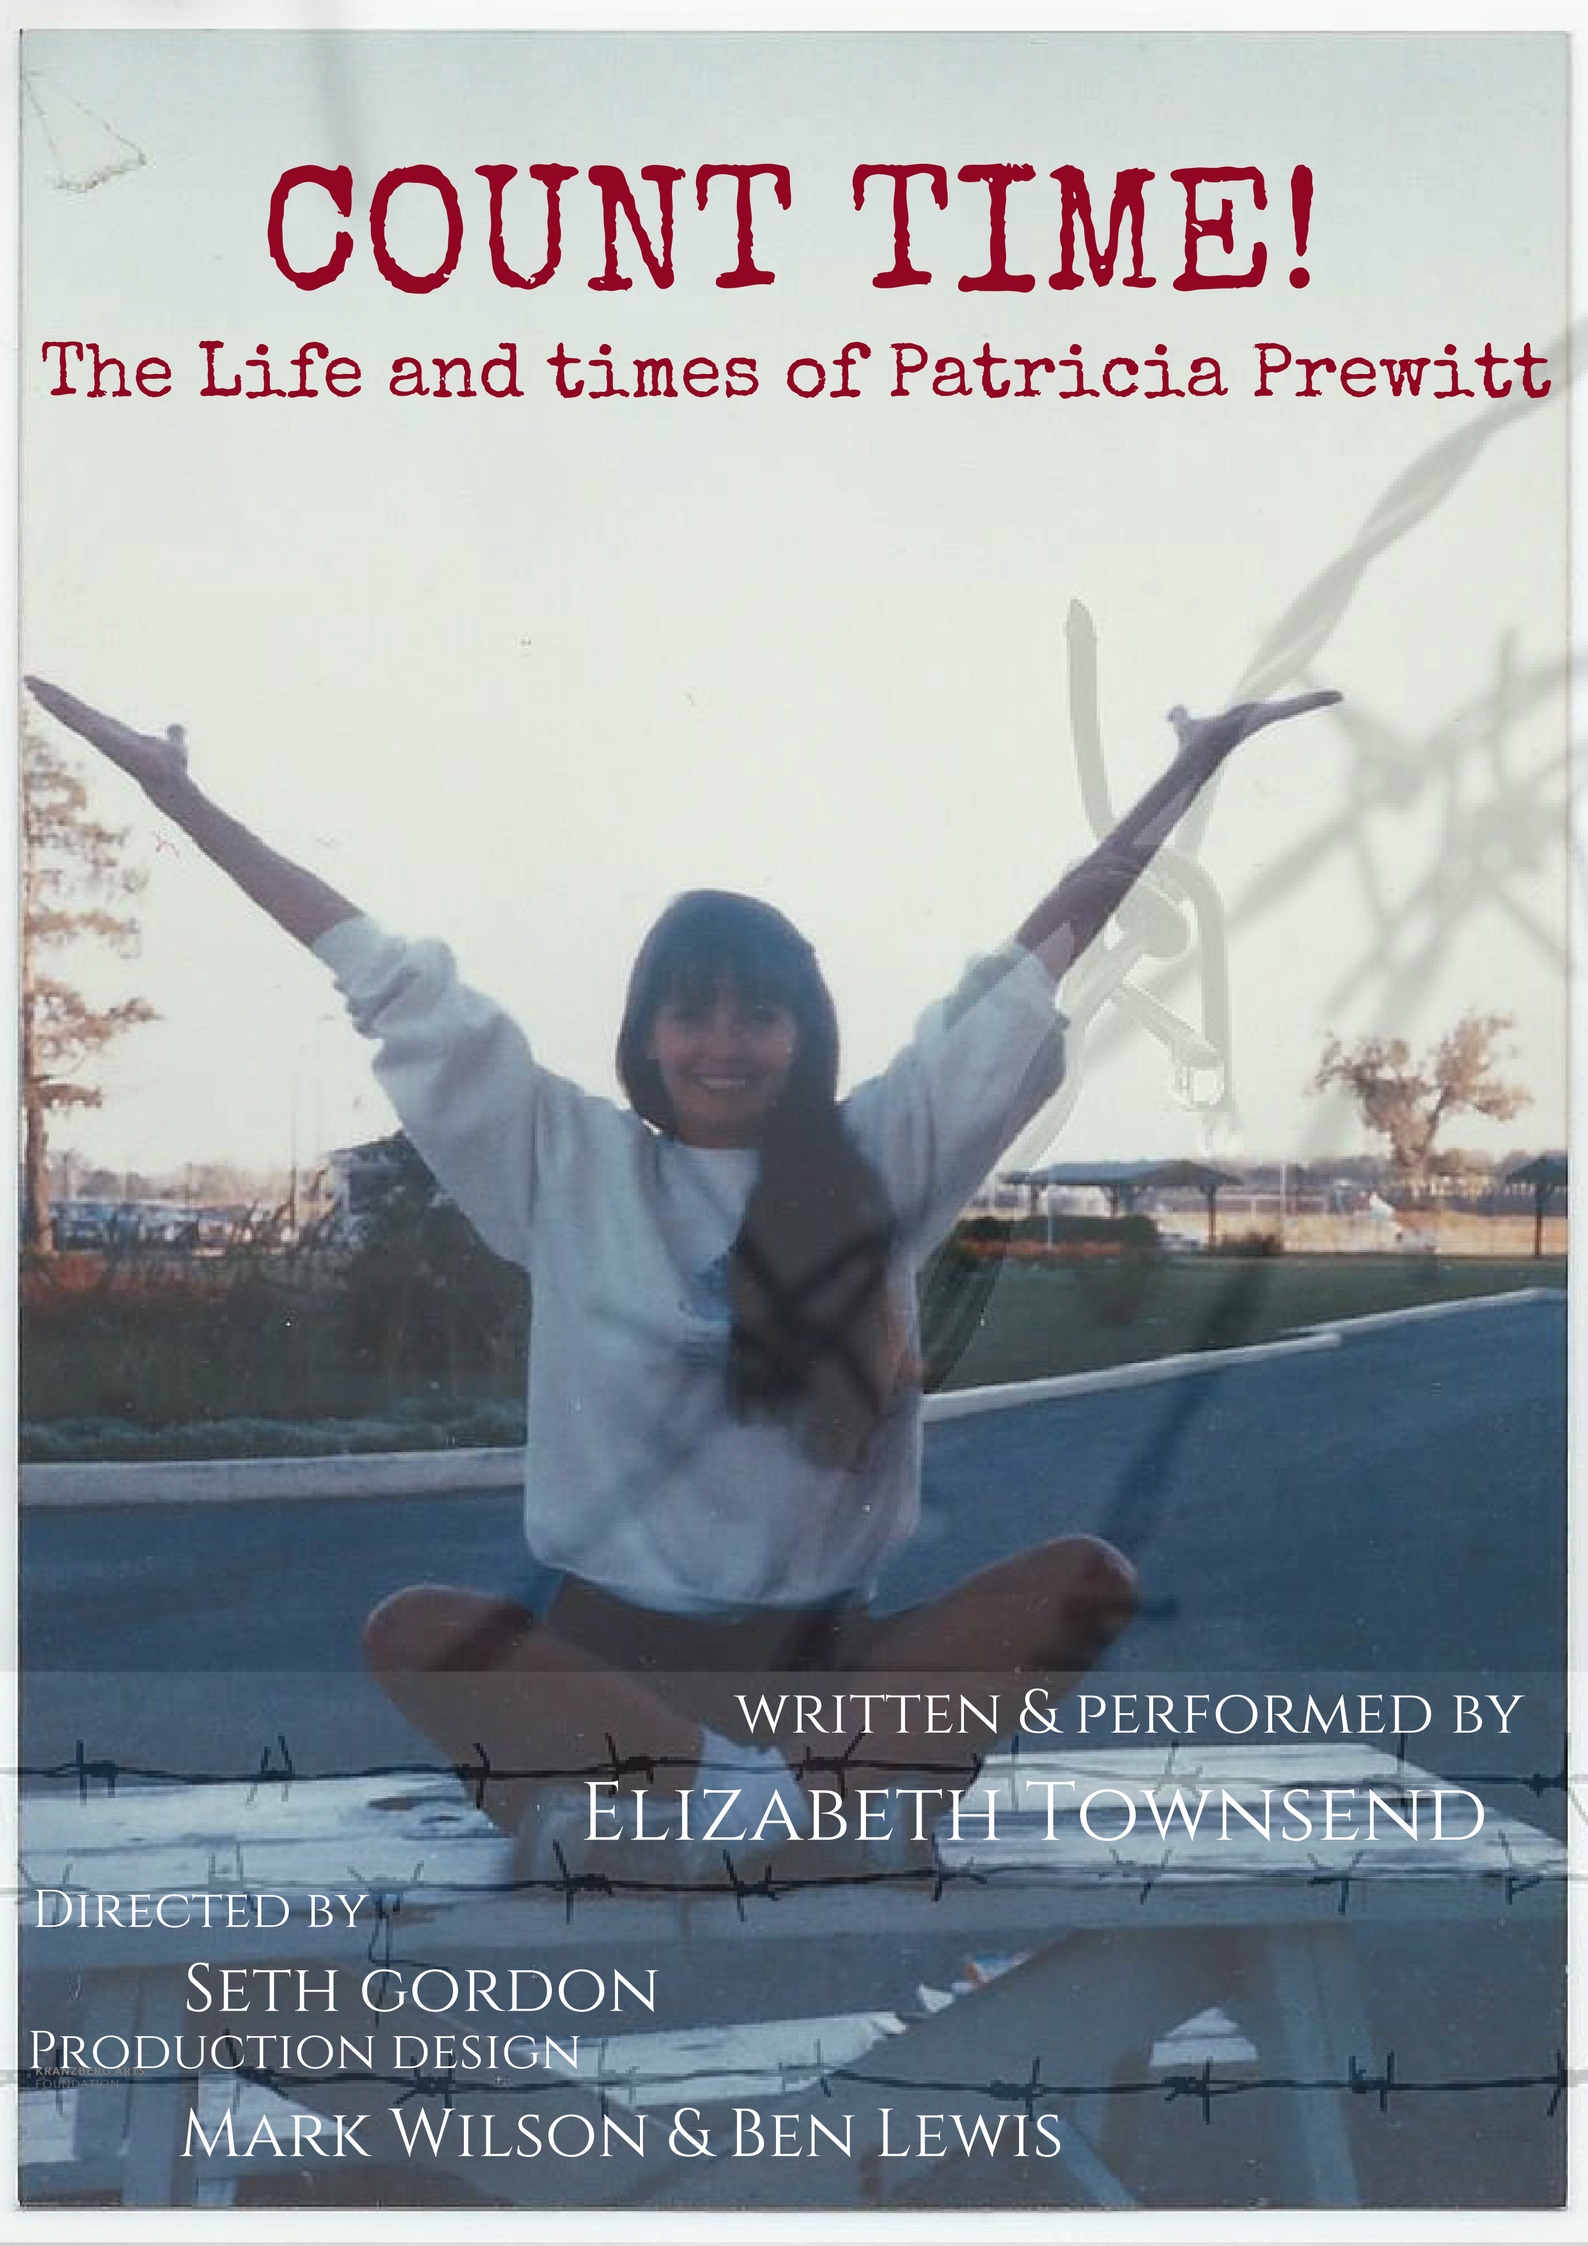 Patty Prewitt. Free Patty. Unjustly incarcerated. Elizabeth Ann Townsend. Count Time! The Life and Times of Patricia Prewitt!